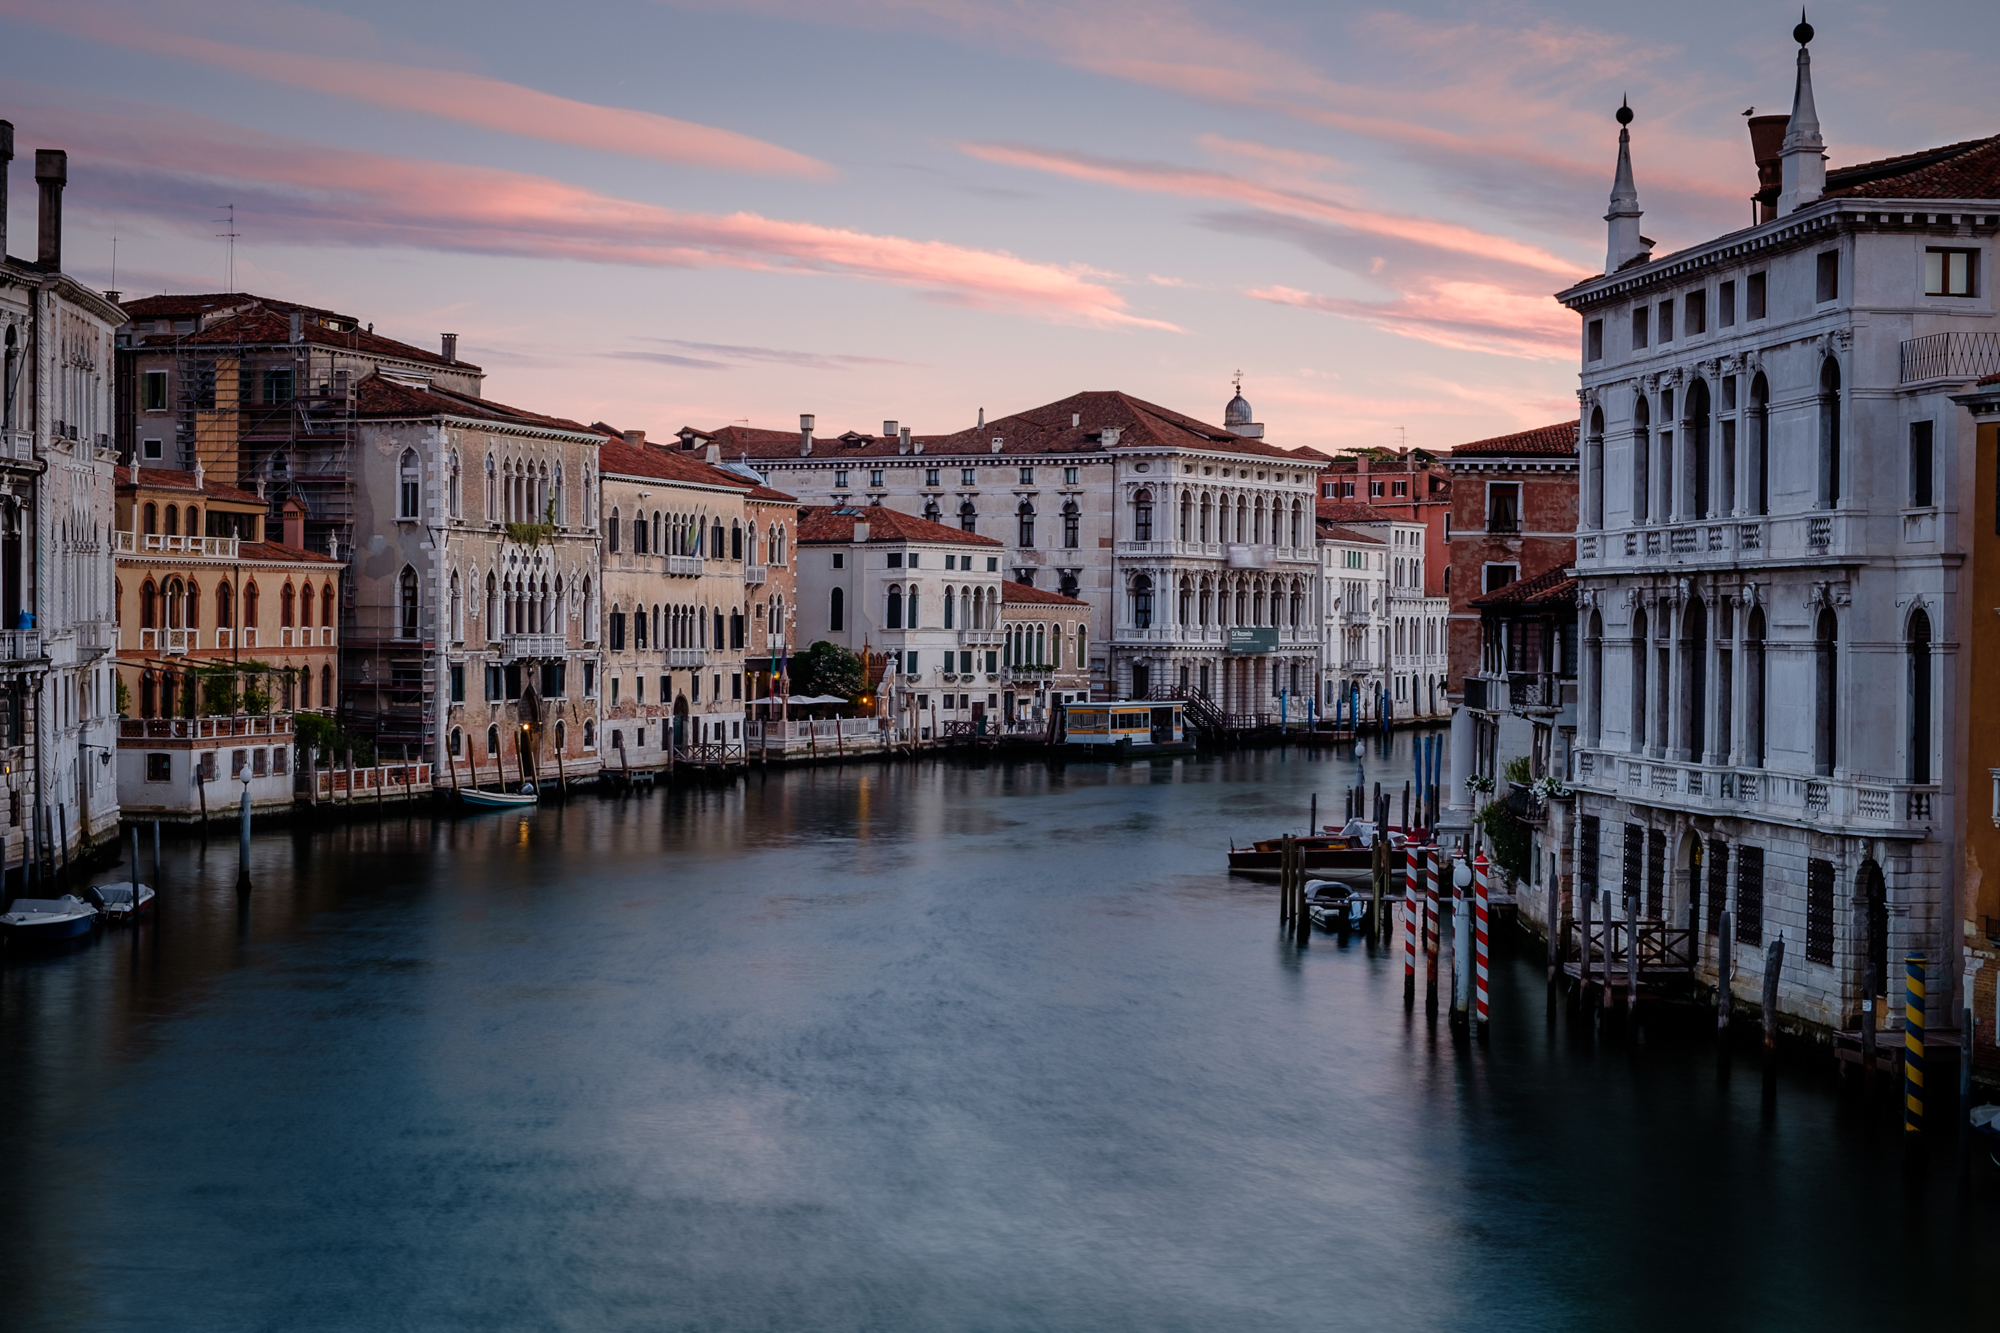 Photo taken at Sunrise on the Grand Canal by Trevor Sherwin